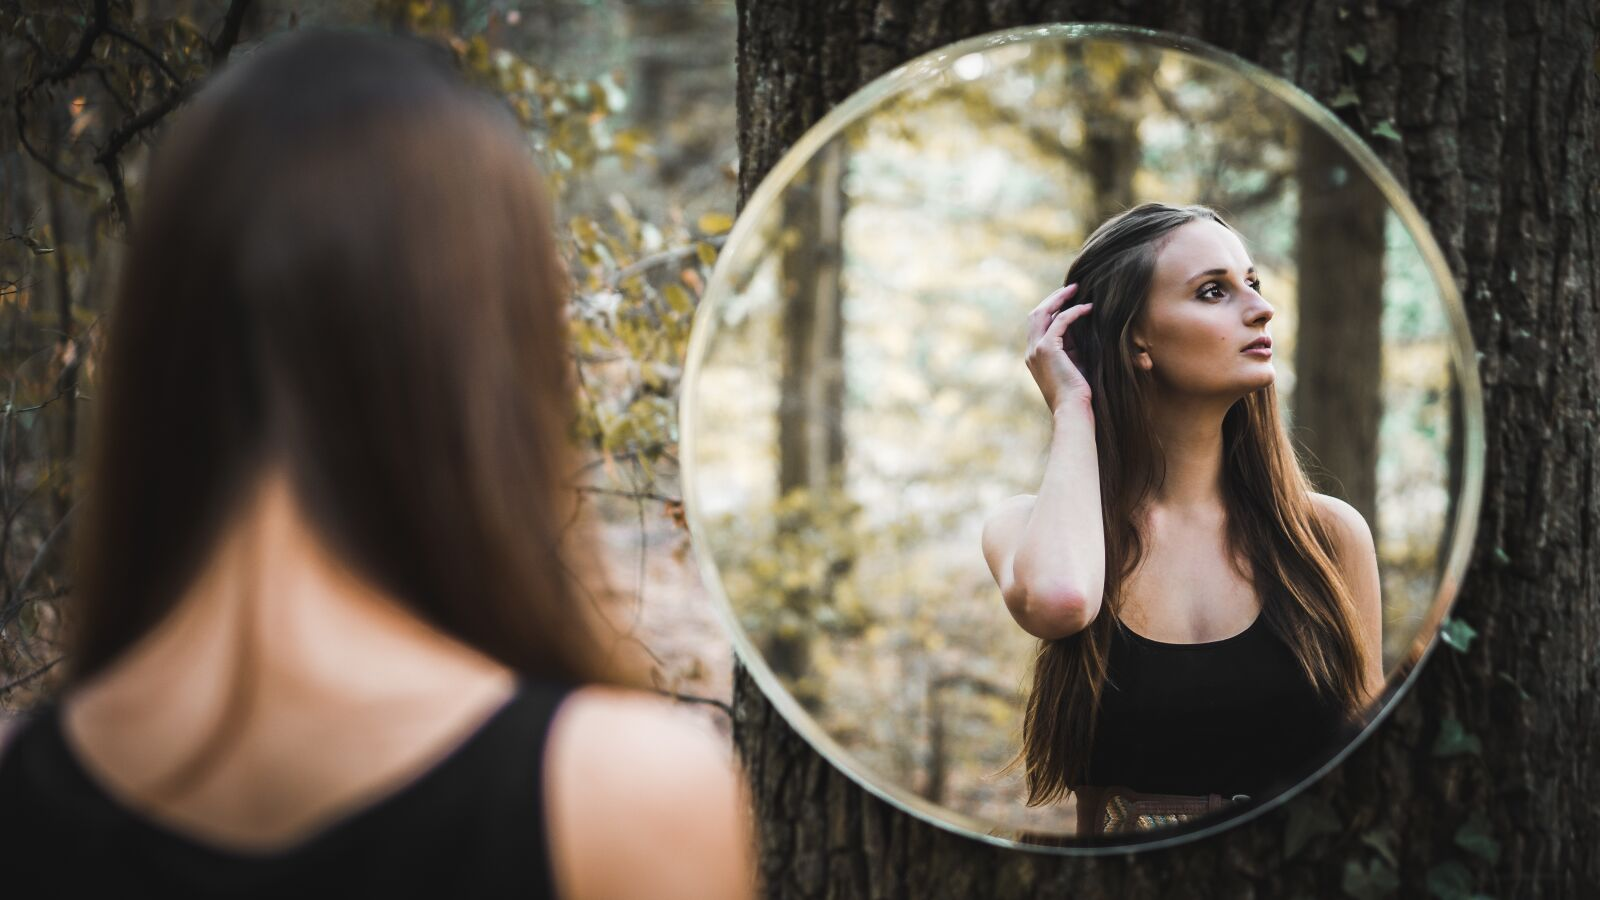 """Sony a6300 sample photo. """"Mirror, girl, forest"""" photography"""